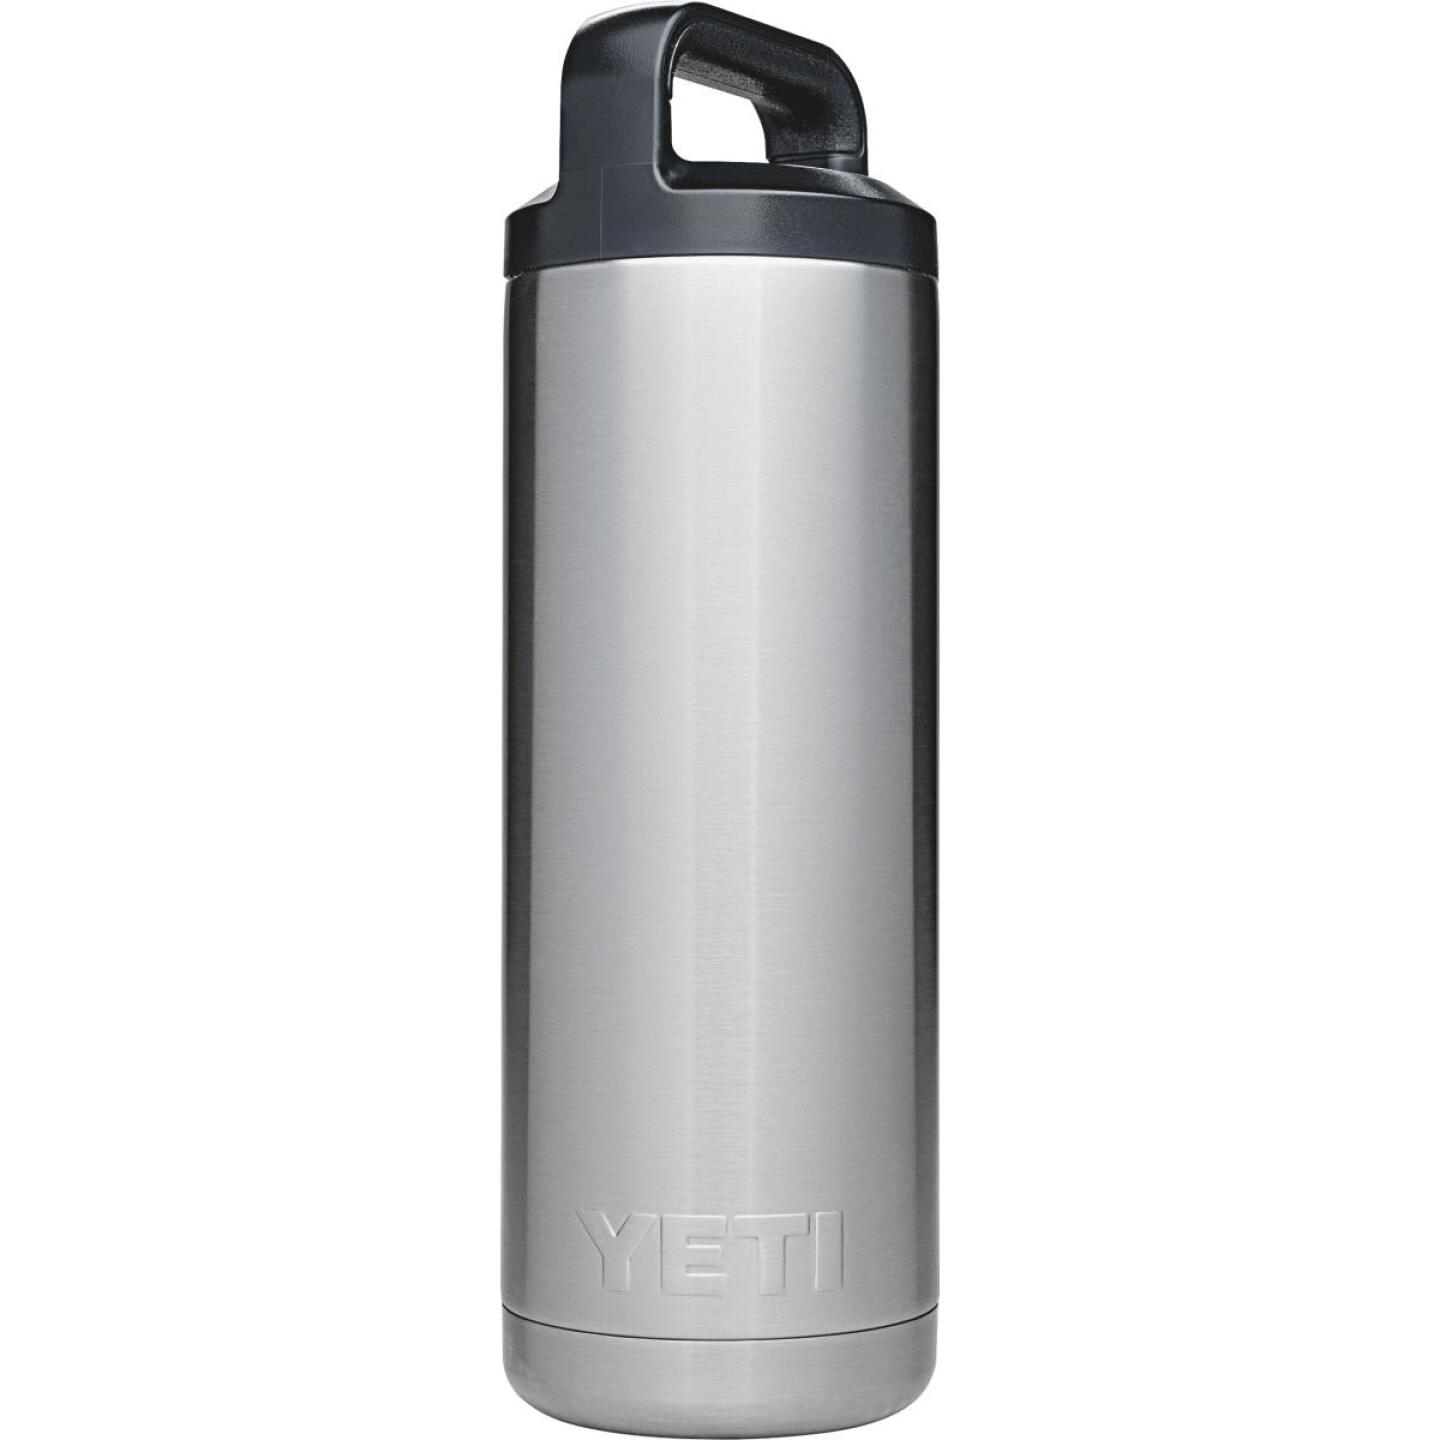 Yeti Rambler 18 Oz. Silver Stainless Steel Insulated Vacuum Bottle Image 2